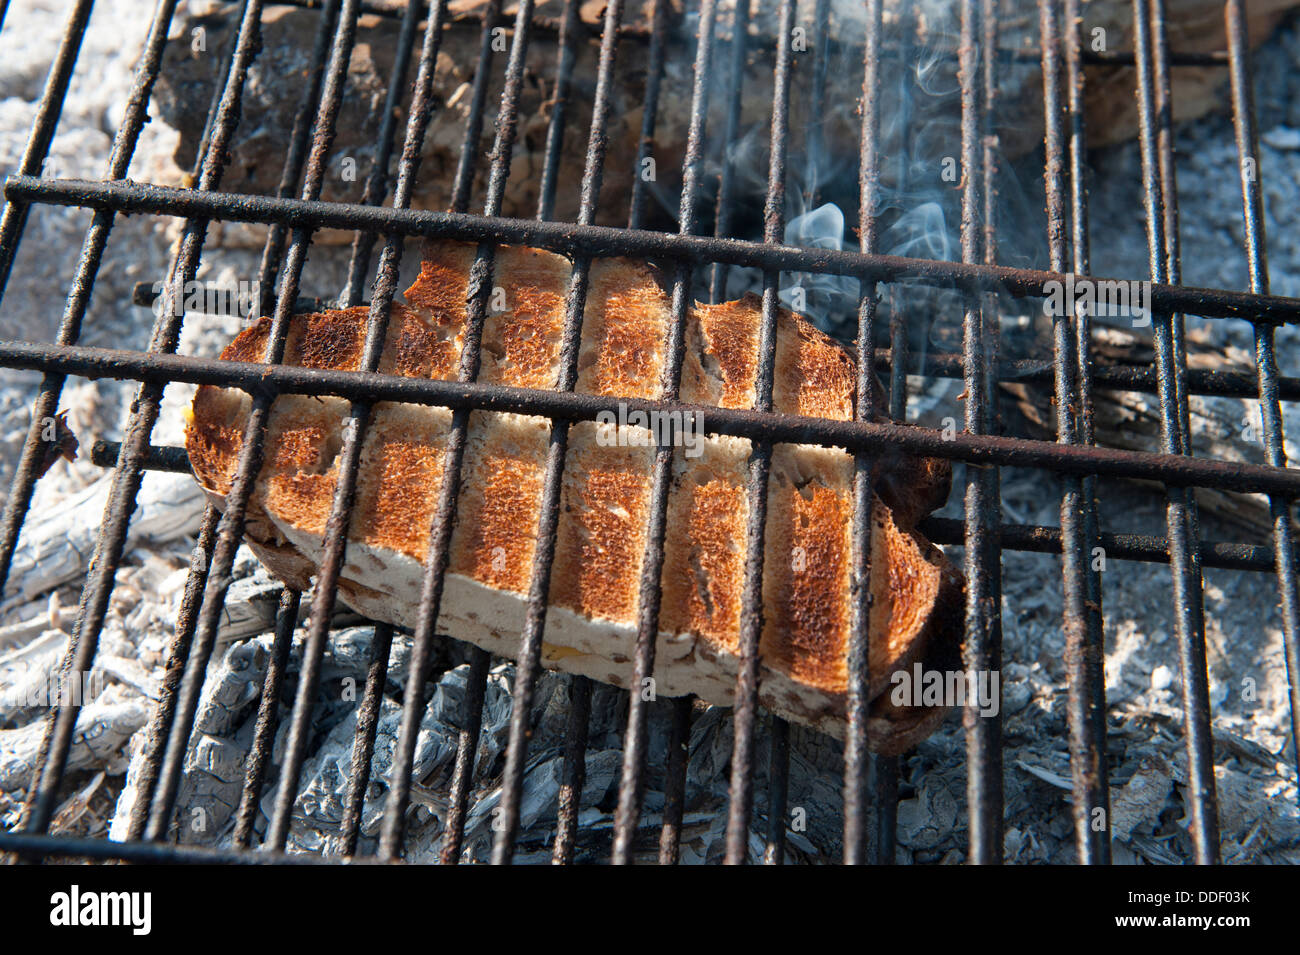 Slice of bread toasted on a campfire, Kunene River, Namibia - Stock Image